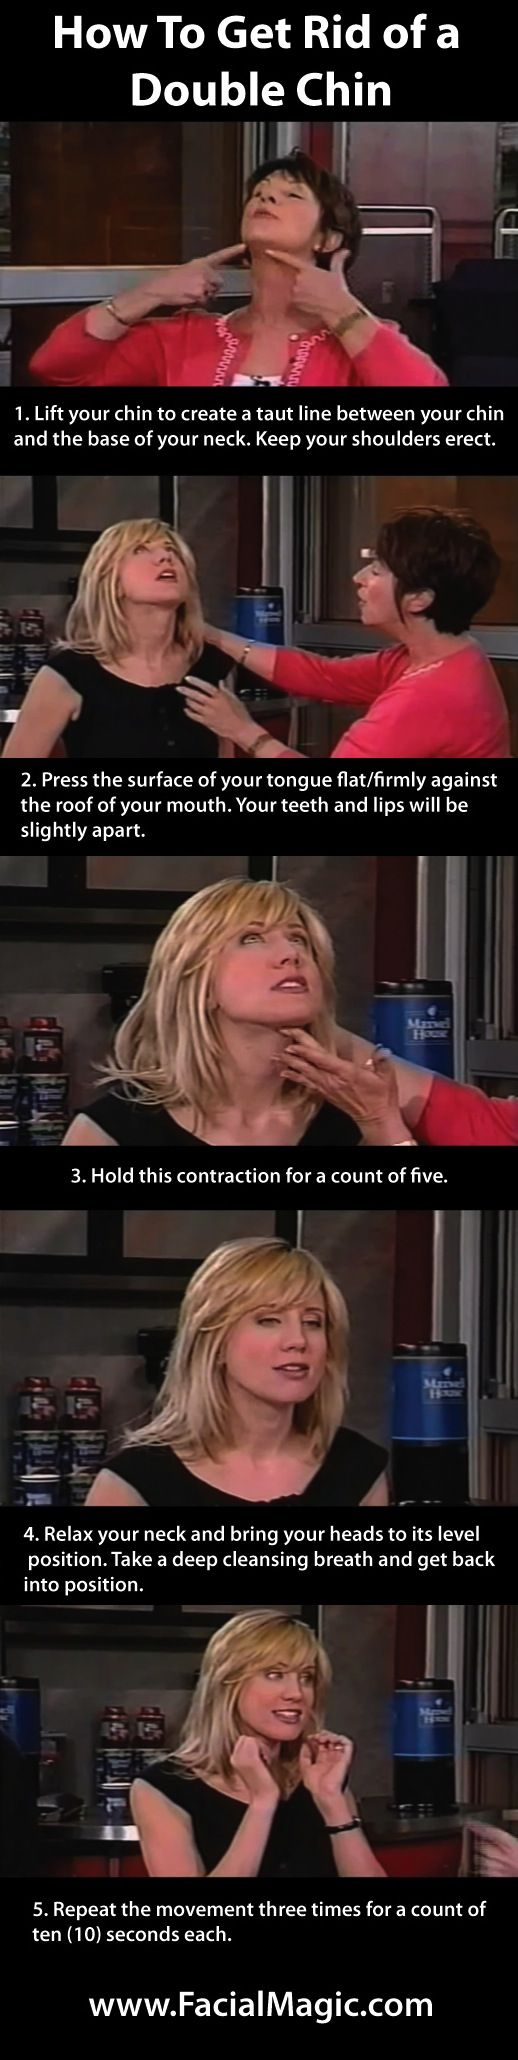 ¿Cómo deshacerse de un doble mentón: Hacer ejercicio facial - How To Get Rid of a Double Chin: Doing Facial exercise